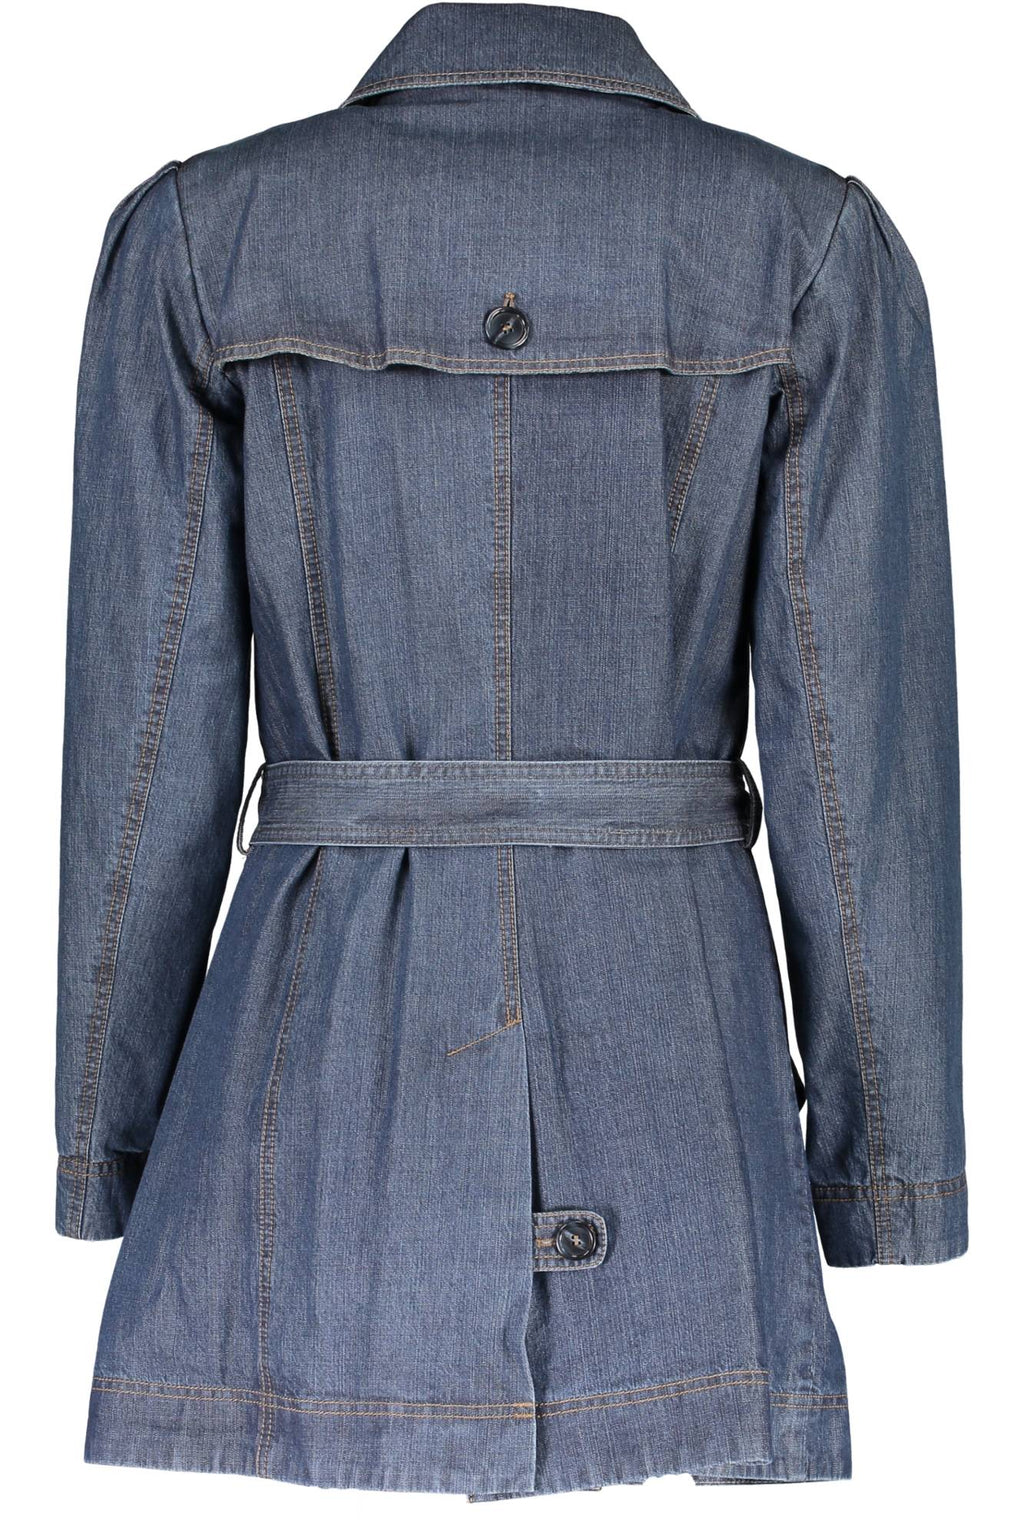 GANT Trench Damen - Blau -  SF-1002.475183_901